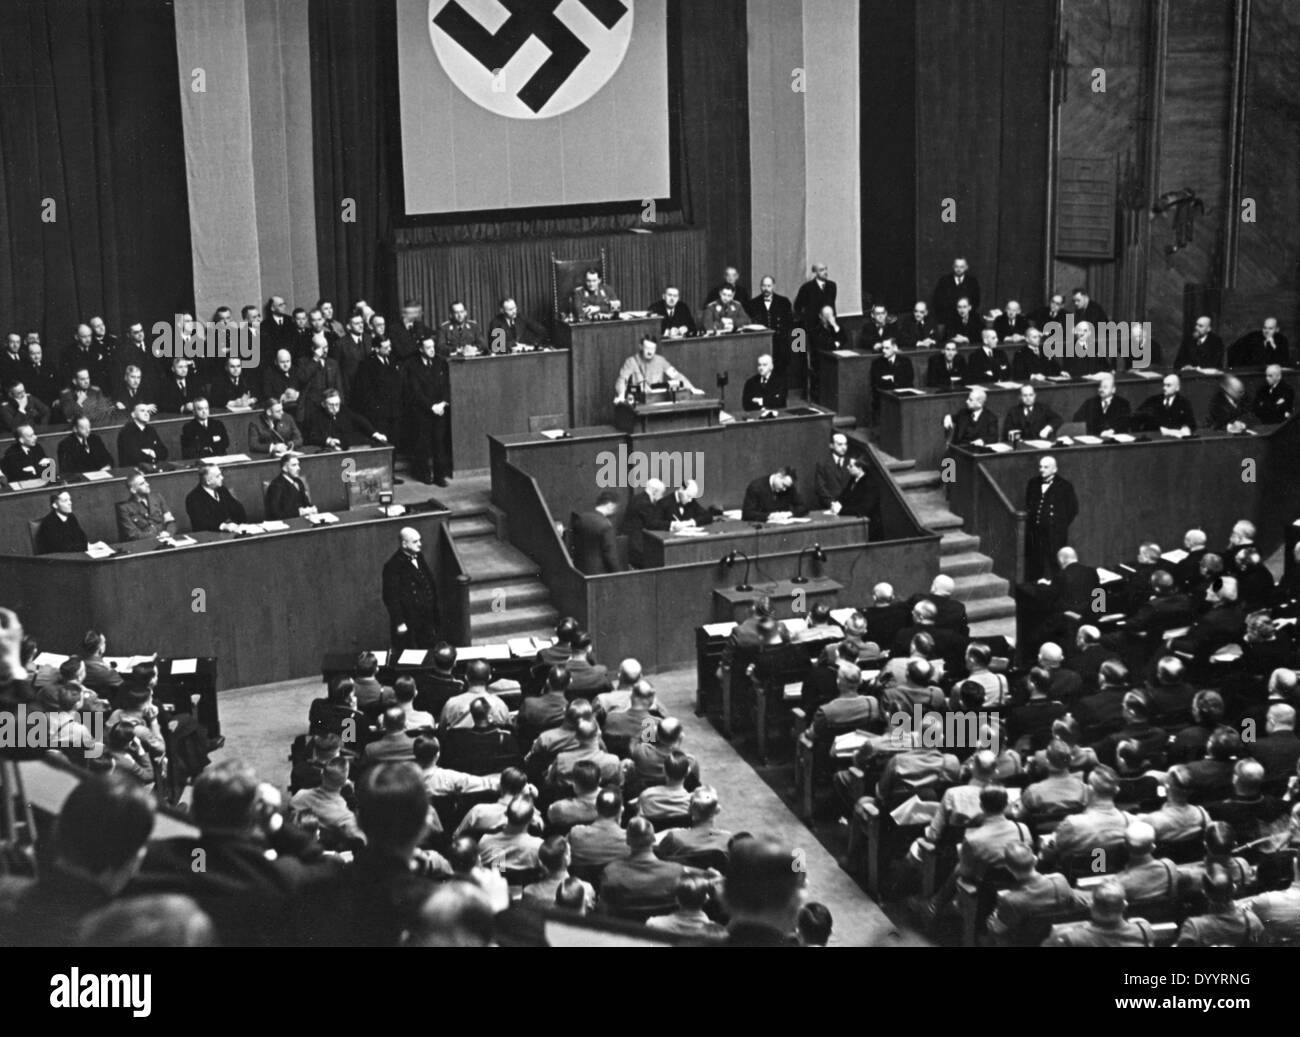 HItler in the Reichstag, 1933 - Stock Image